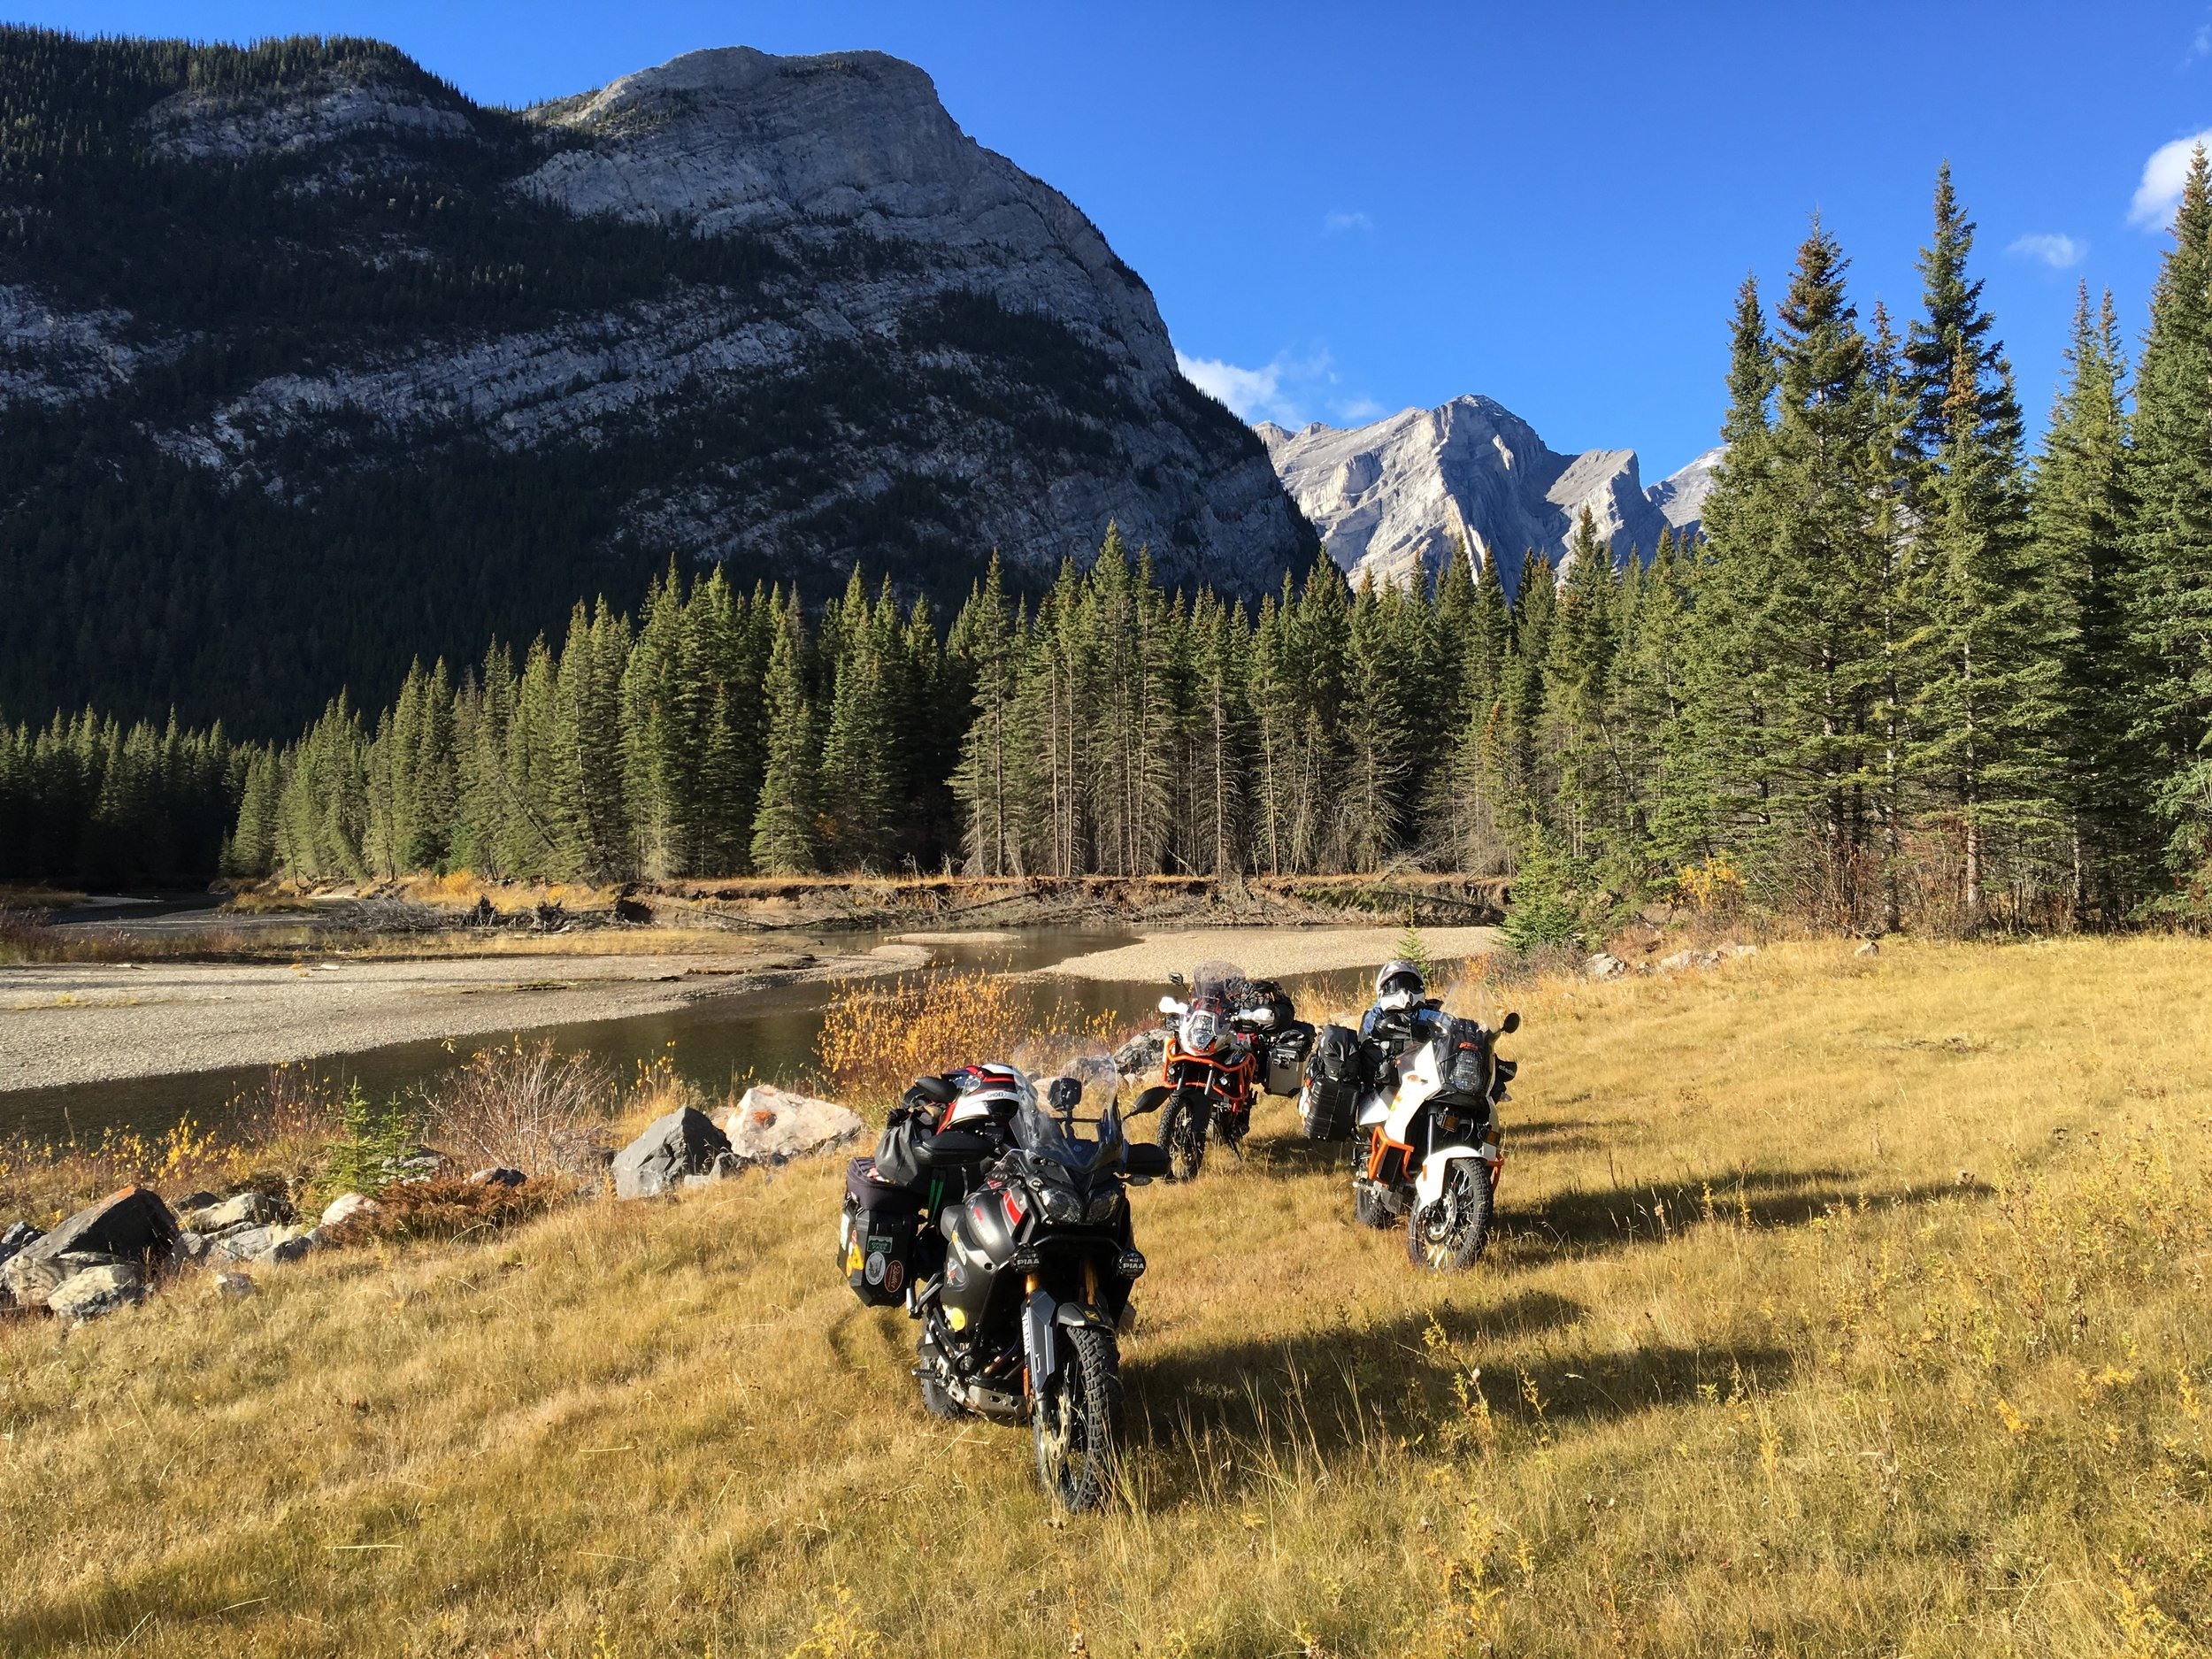 Epic ride to Alberta & British Columbia with my Adventure friends Marshal Gardner and his nephew Devin.